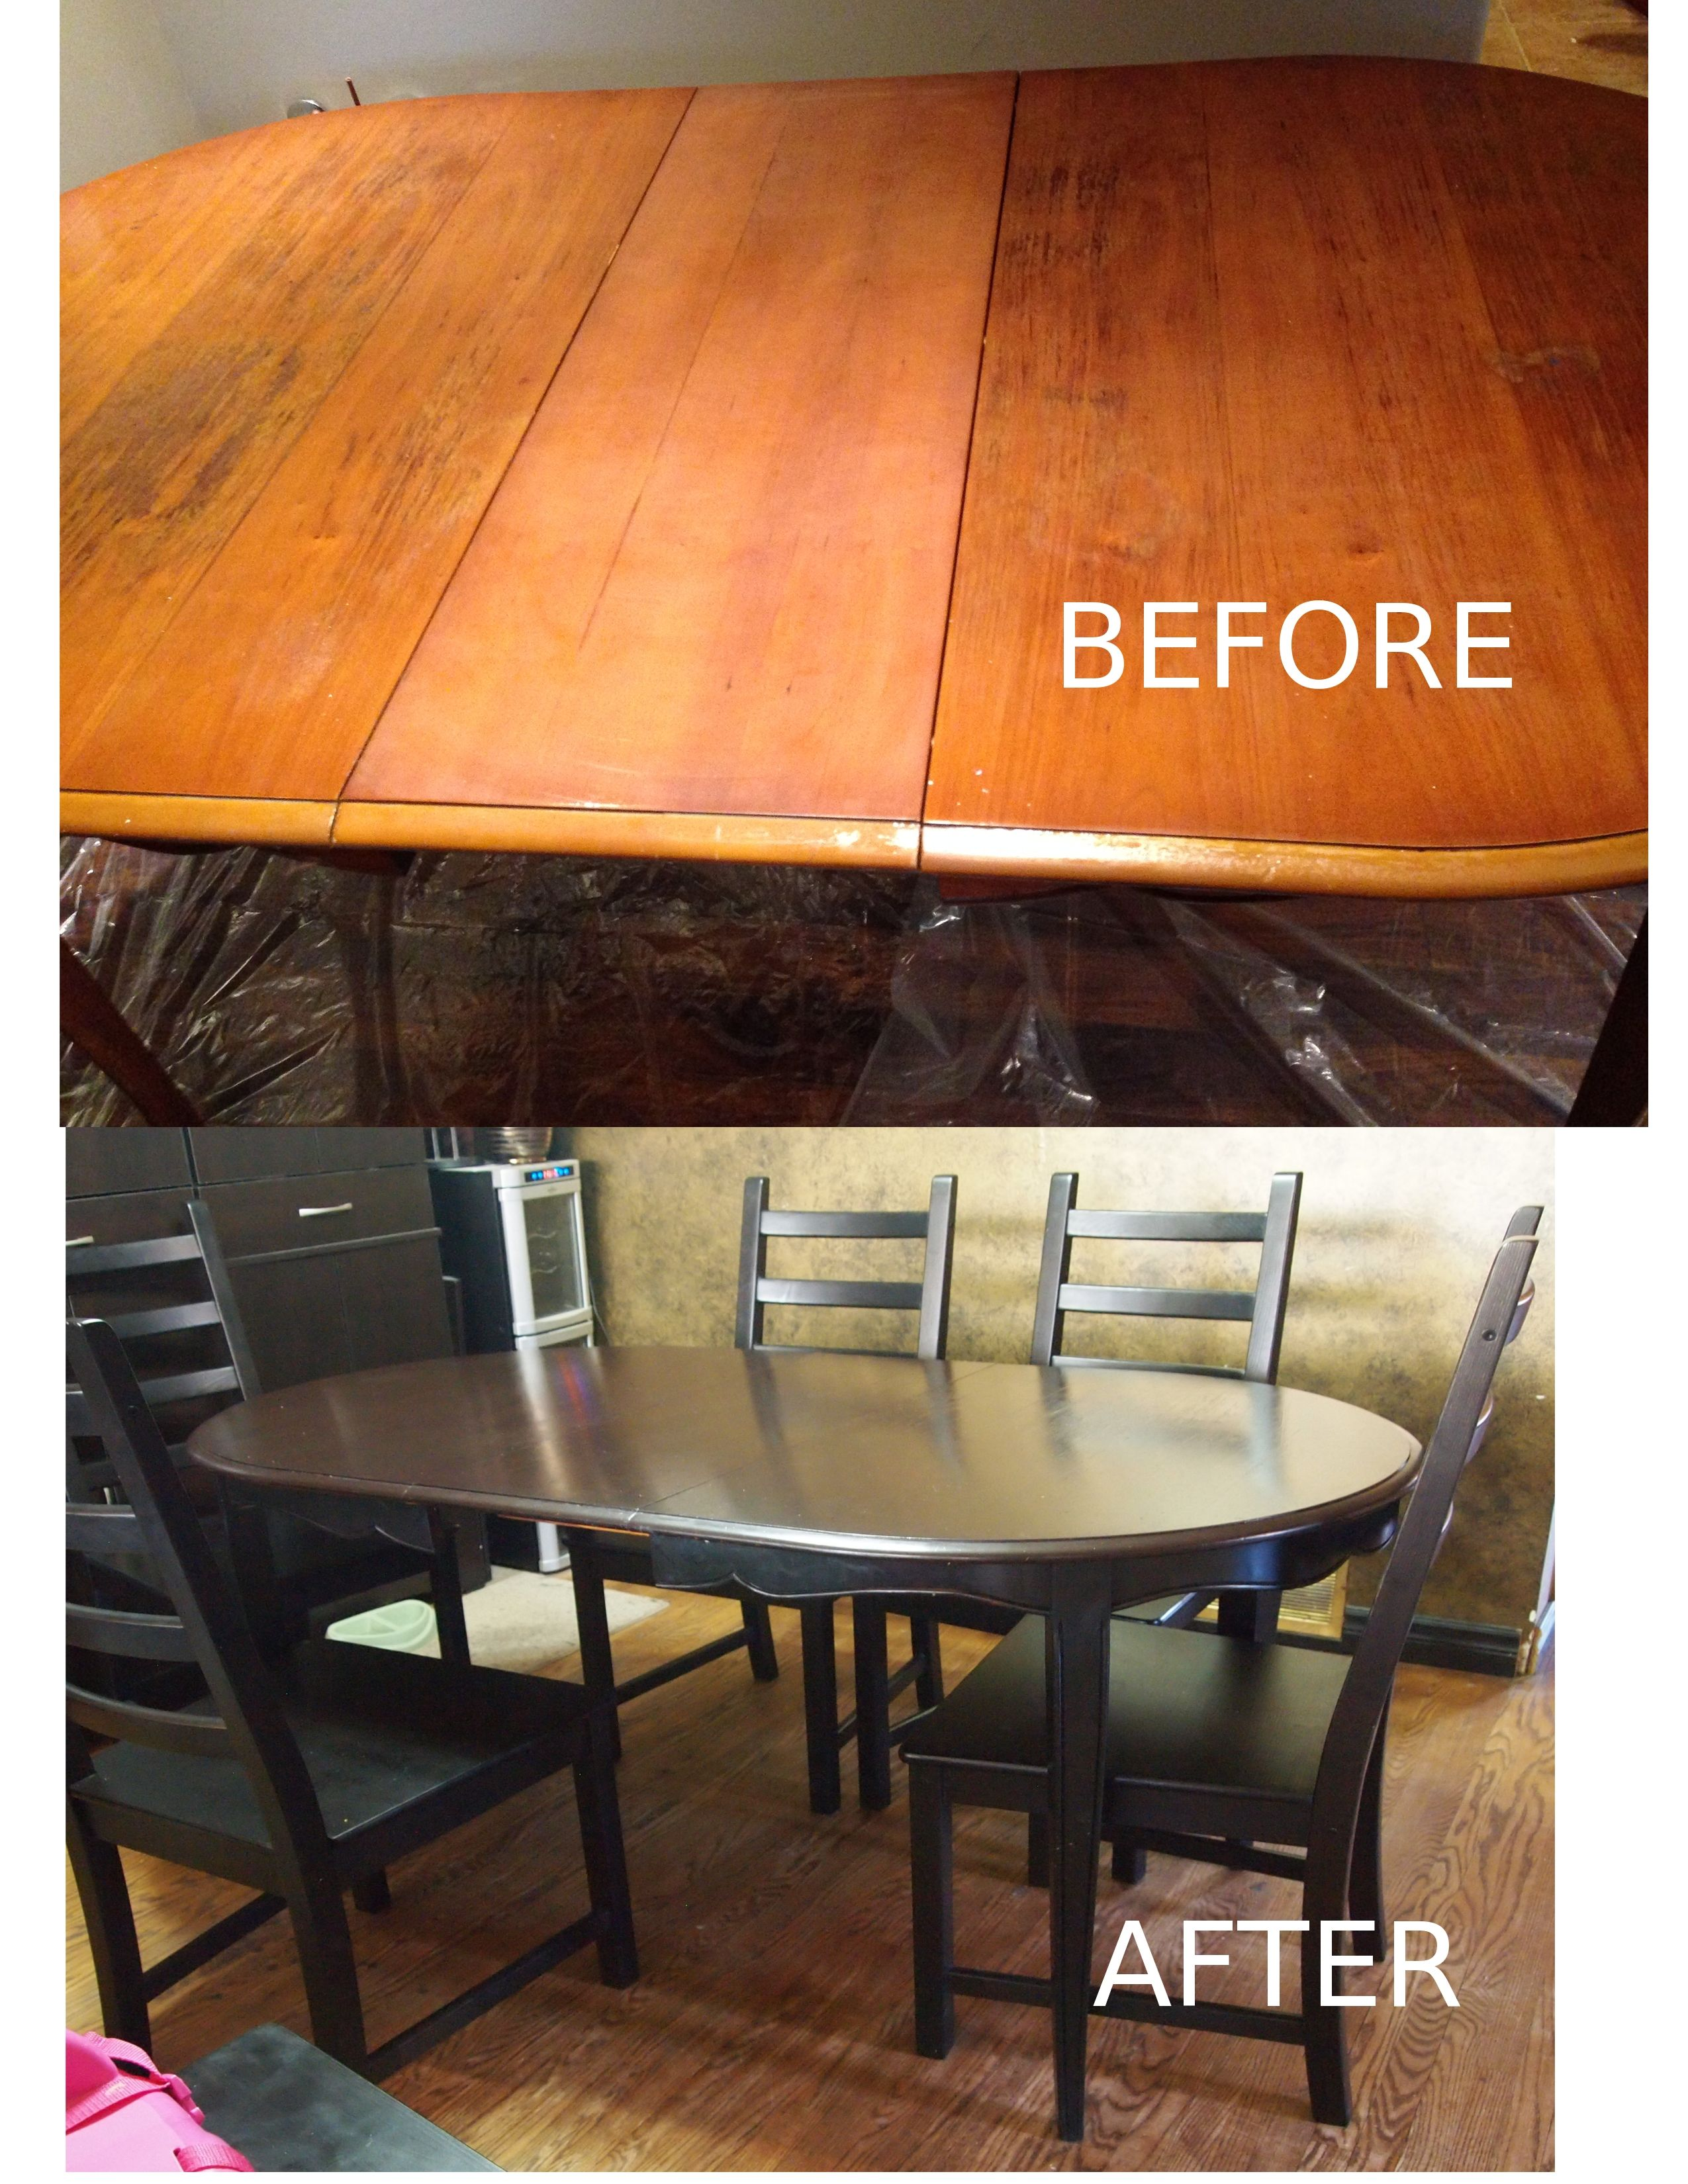 Table refinished in General Finishes Gel Stain in Java and Black ...